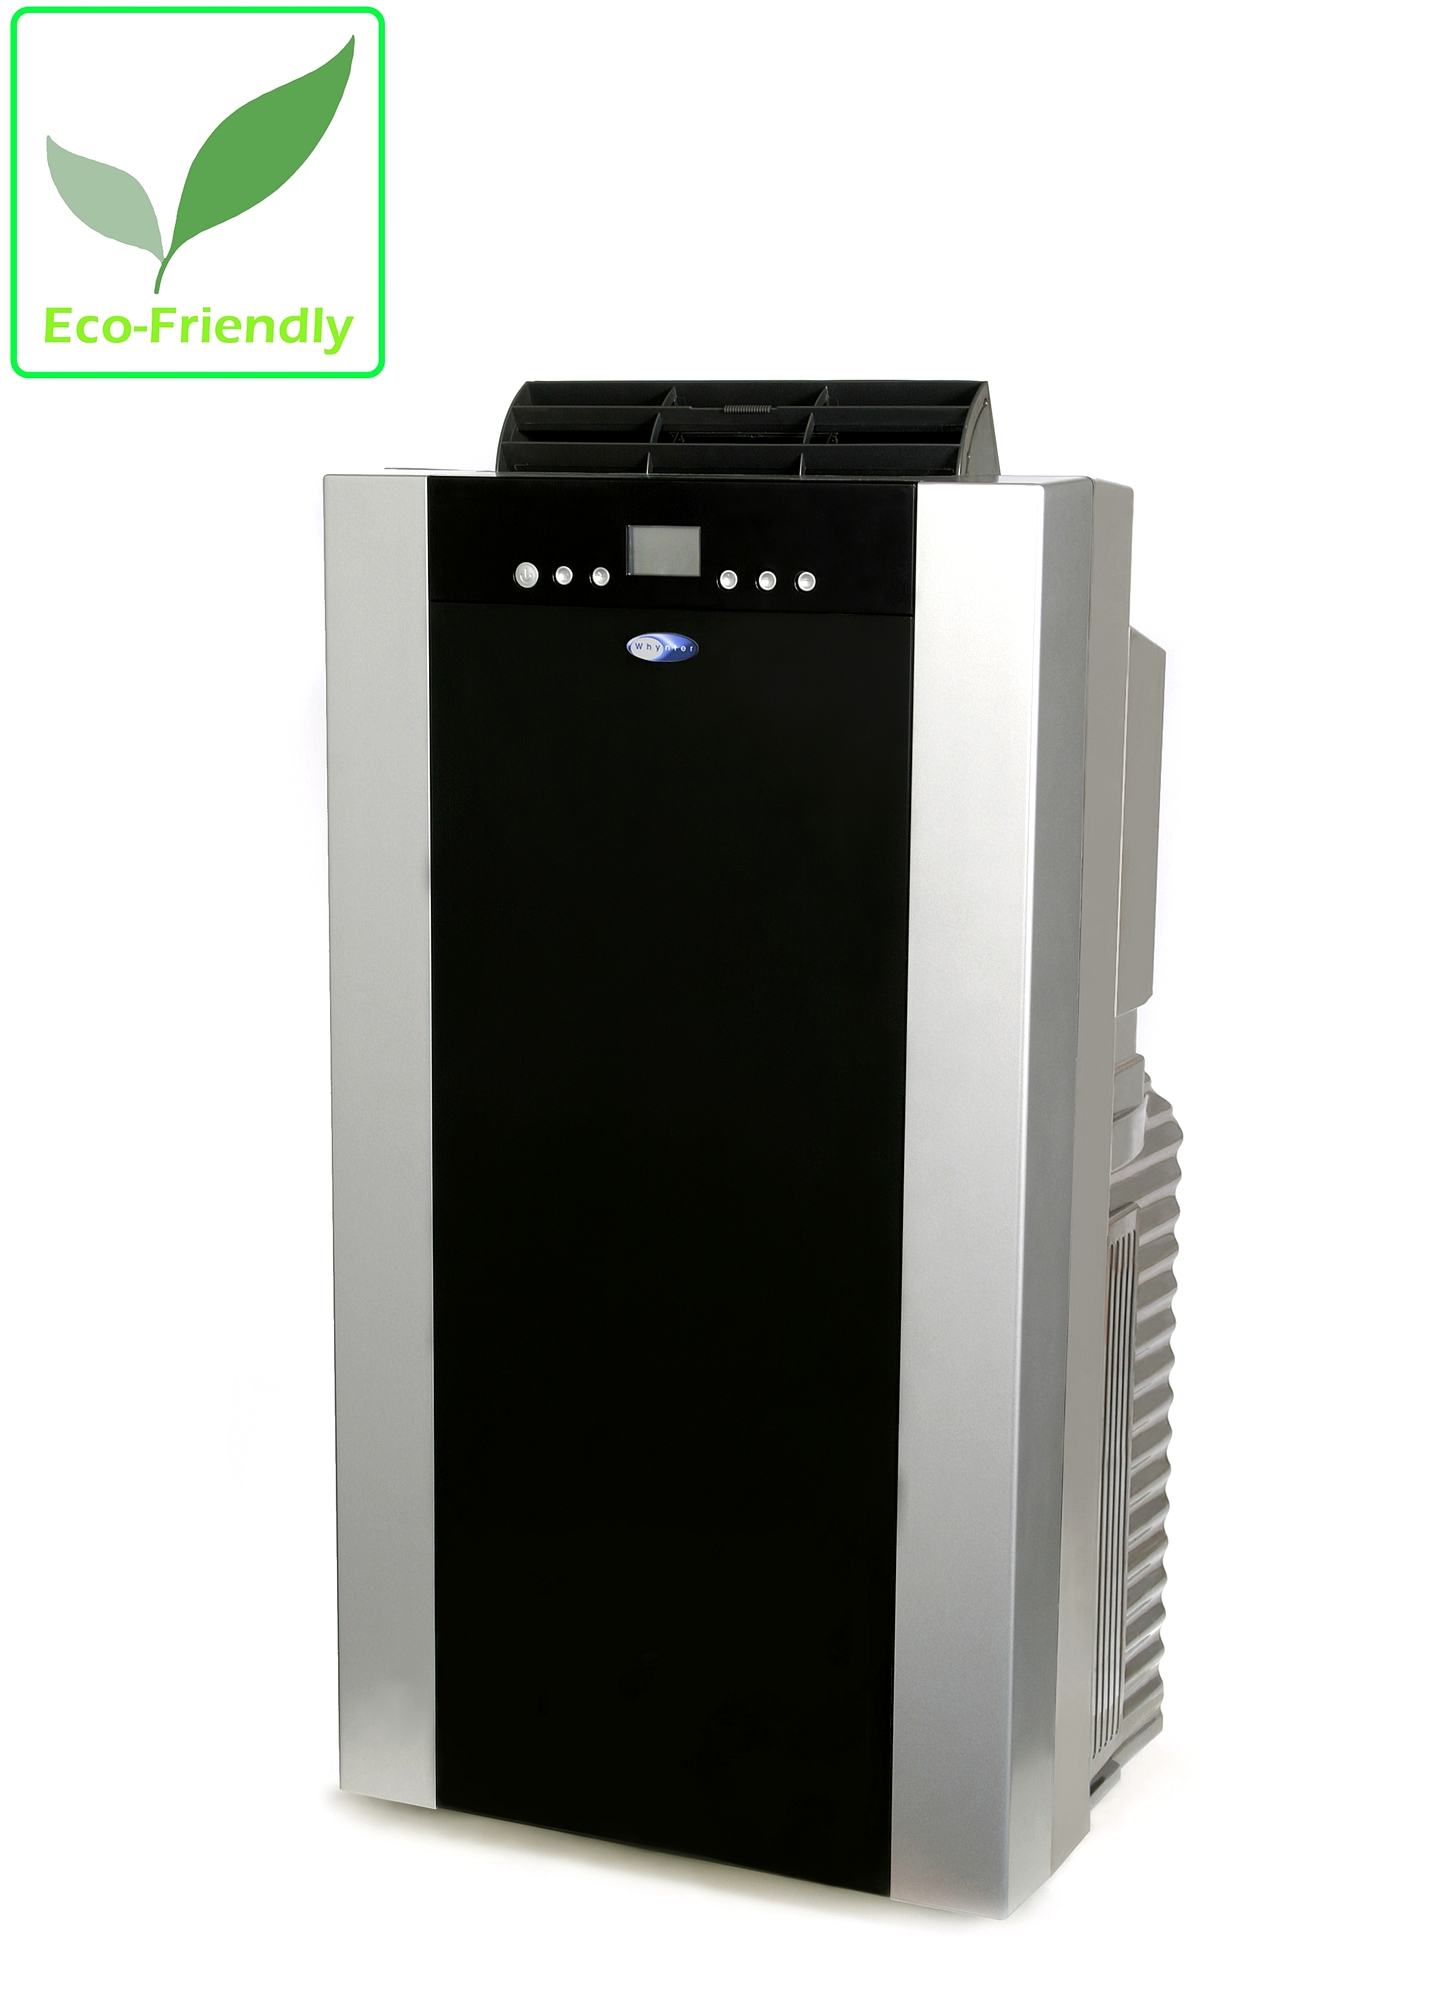 Royal Sovereign ARP1200EX - 12,000 Portable Dual Hose Air Conditioner with Dehumidifier, Fan Dual hose system with 12,000 BTU's to cool any room quickly and efficiently.